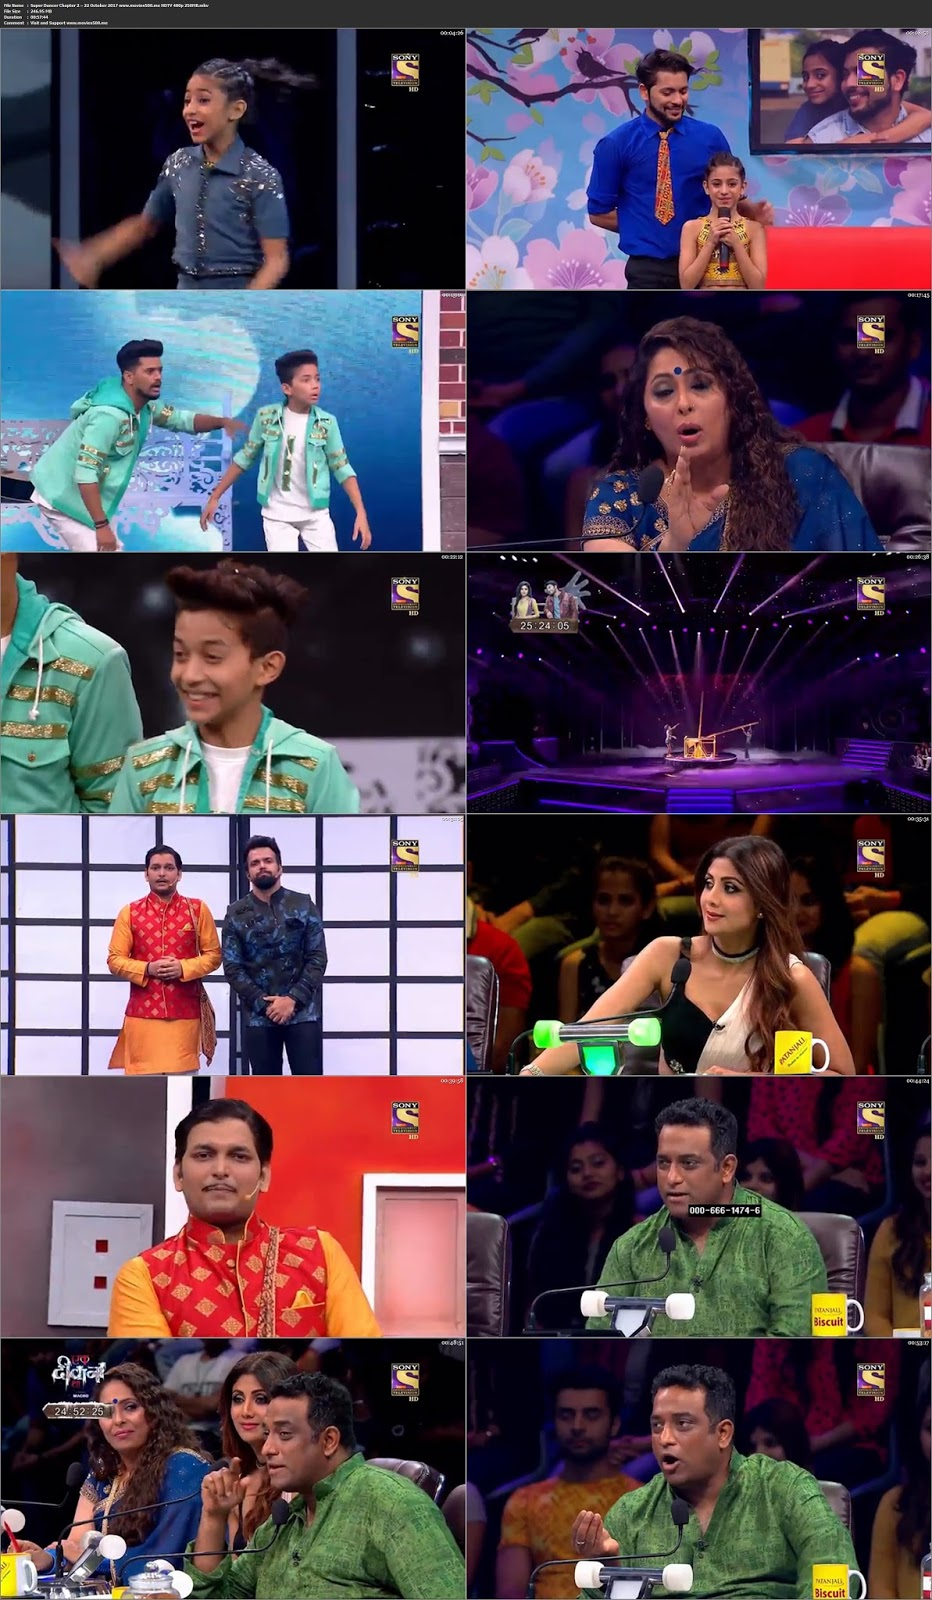 Super Dancer Chapter 2 2017 22 October 246MB HDTV 480p at 9966132.com